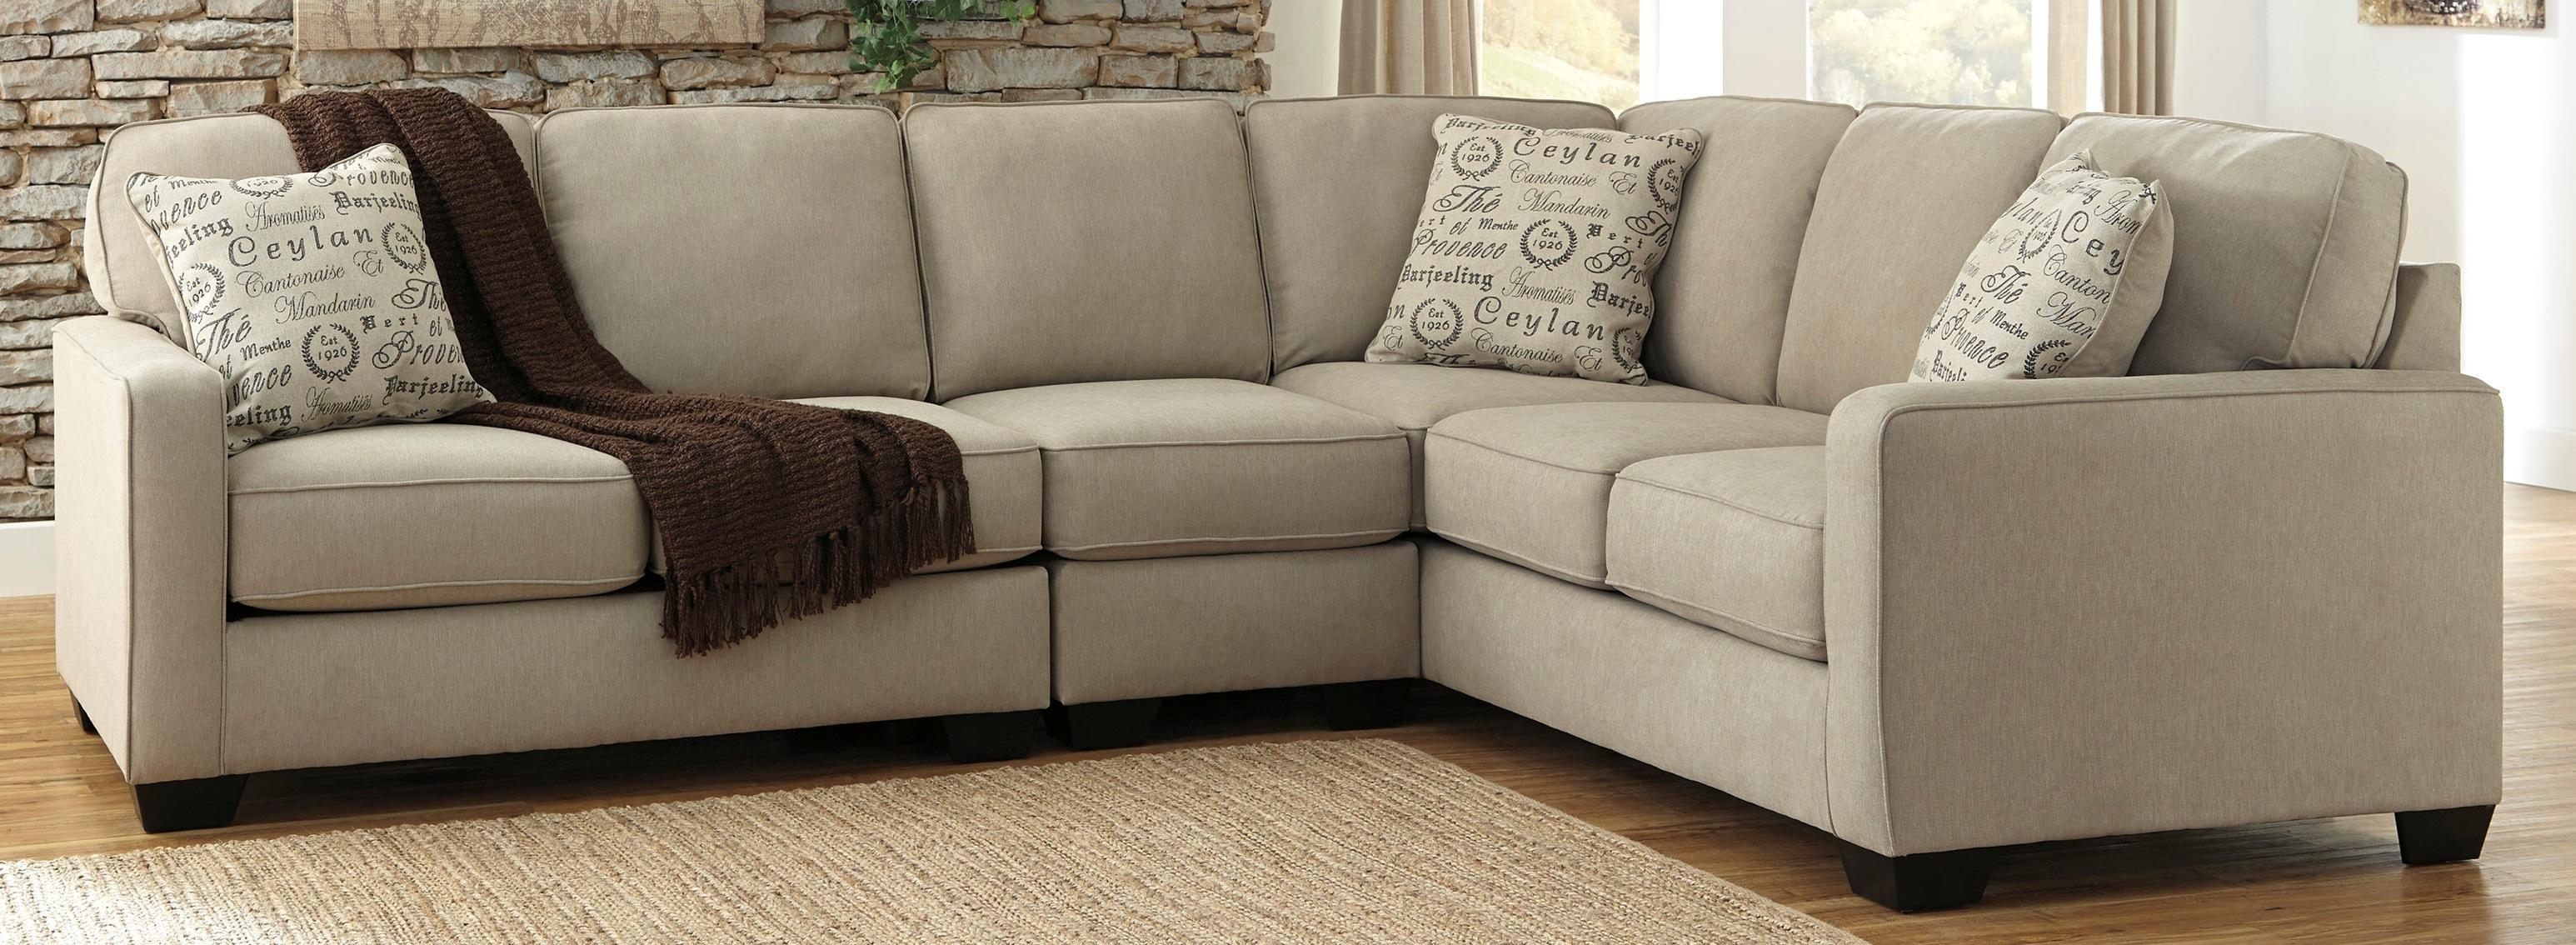 Project Ideas Ashley Furniture Small Sectional Beautiful Design Inside Ashley Furniture Grenada Sectional (View 10 of 15)